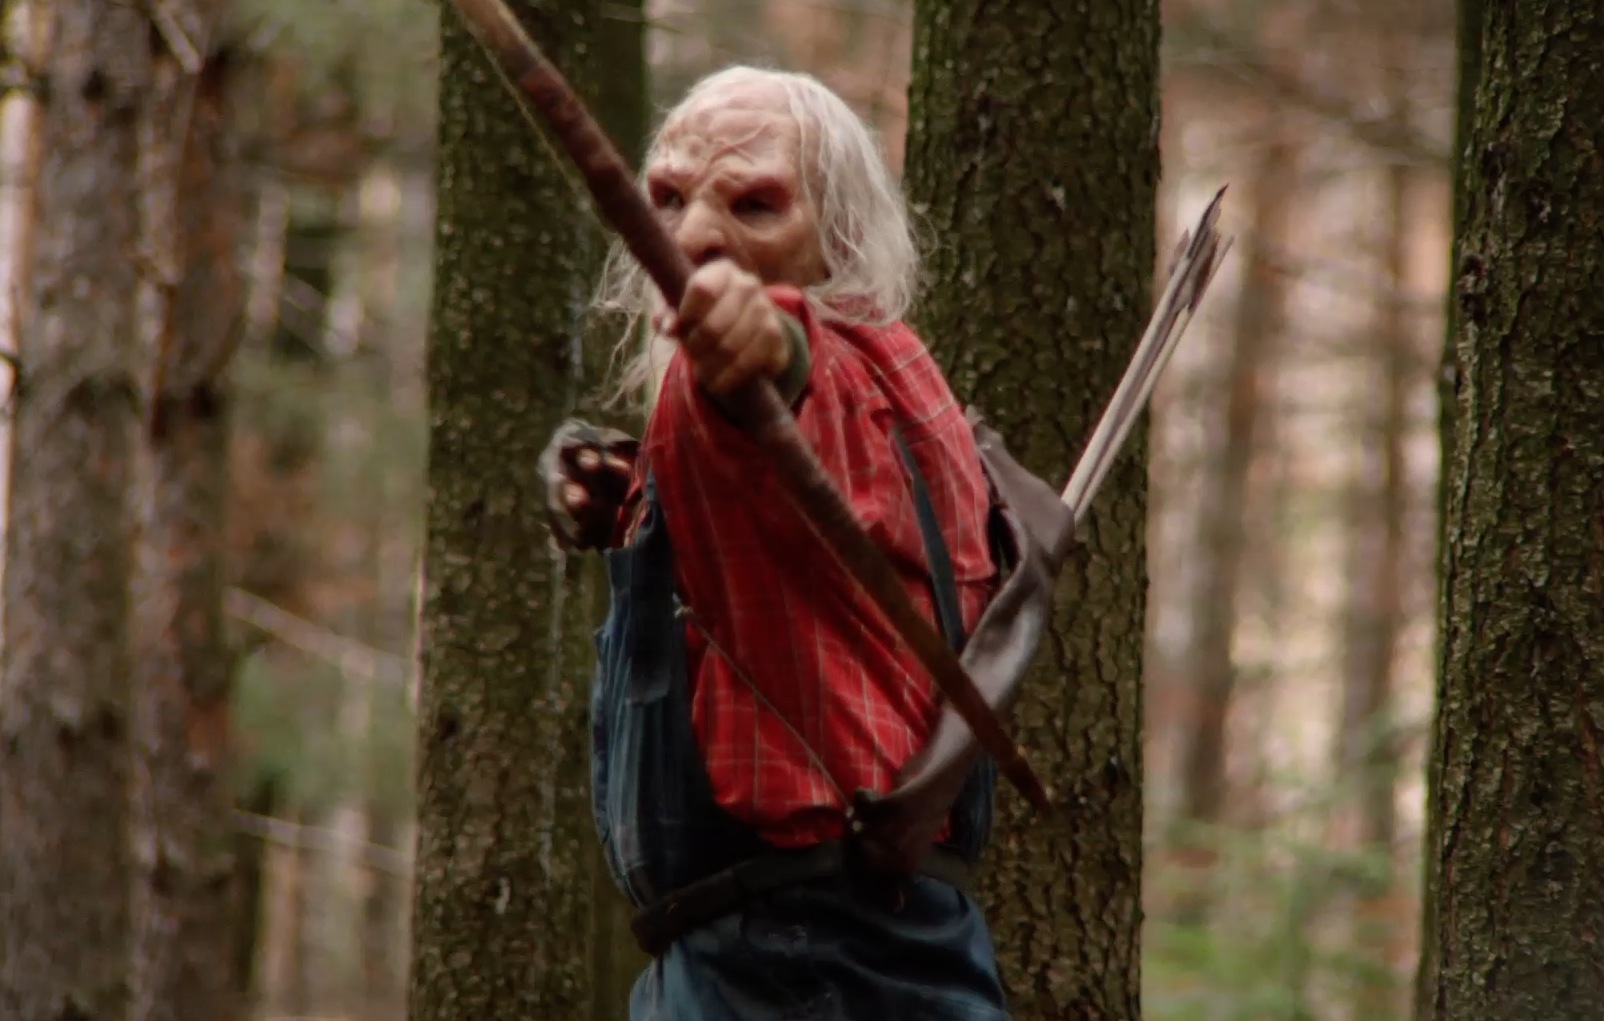 Filming Has Begun on the New Installment in the 'Wrong Turn' Franchise - Bloody Disgusting